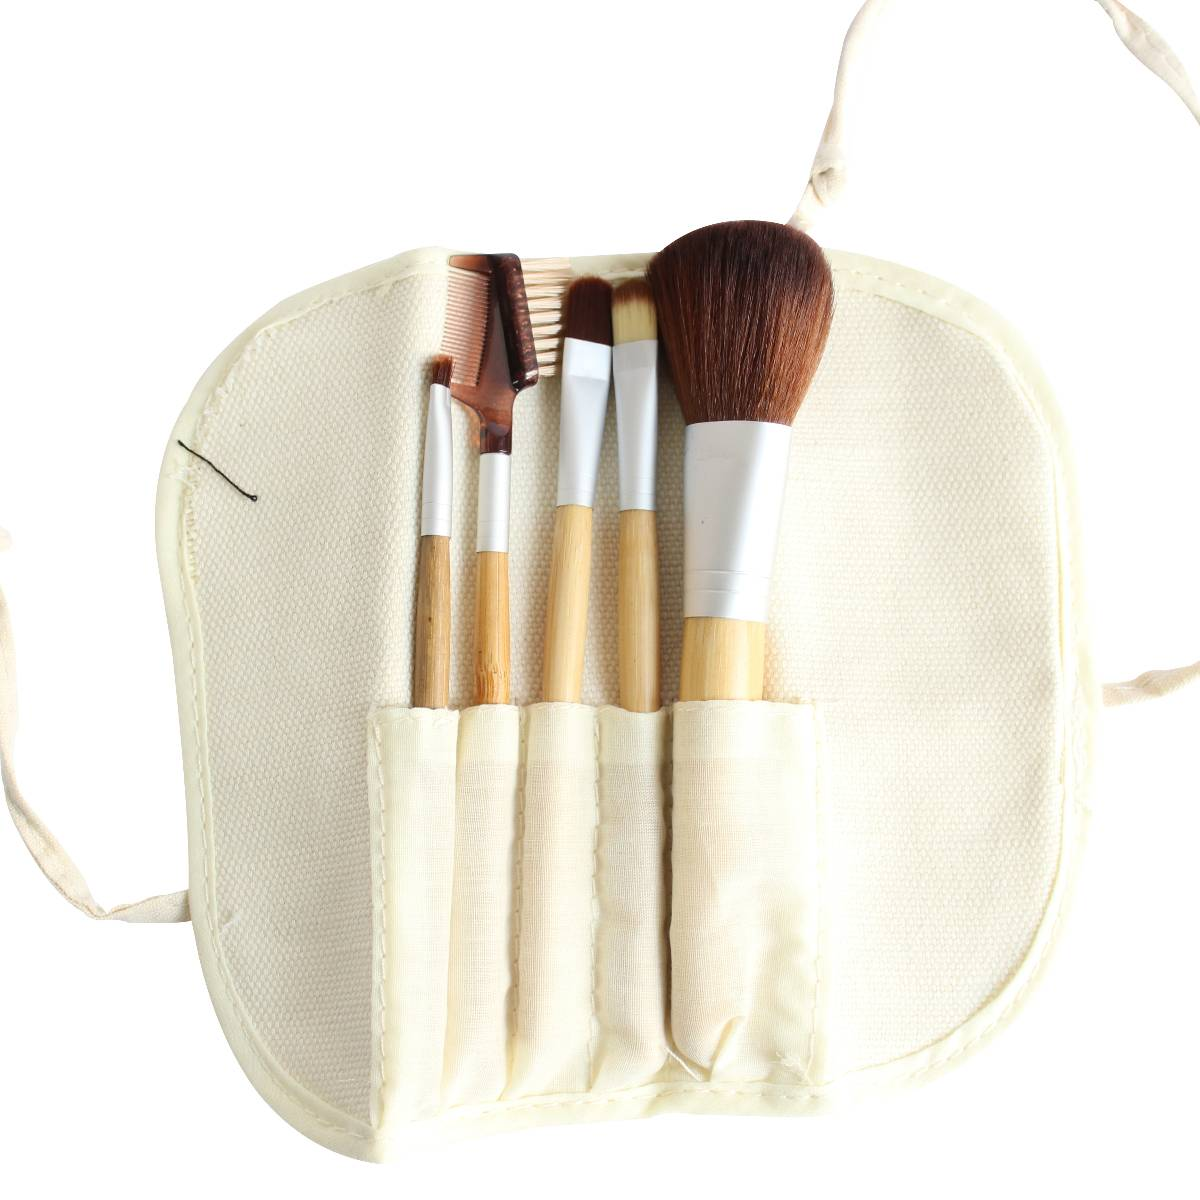 Bamboo Make Up Brush 5pc/ Set